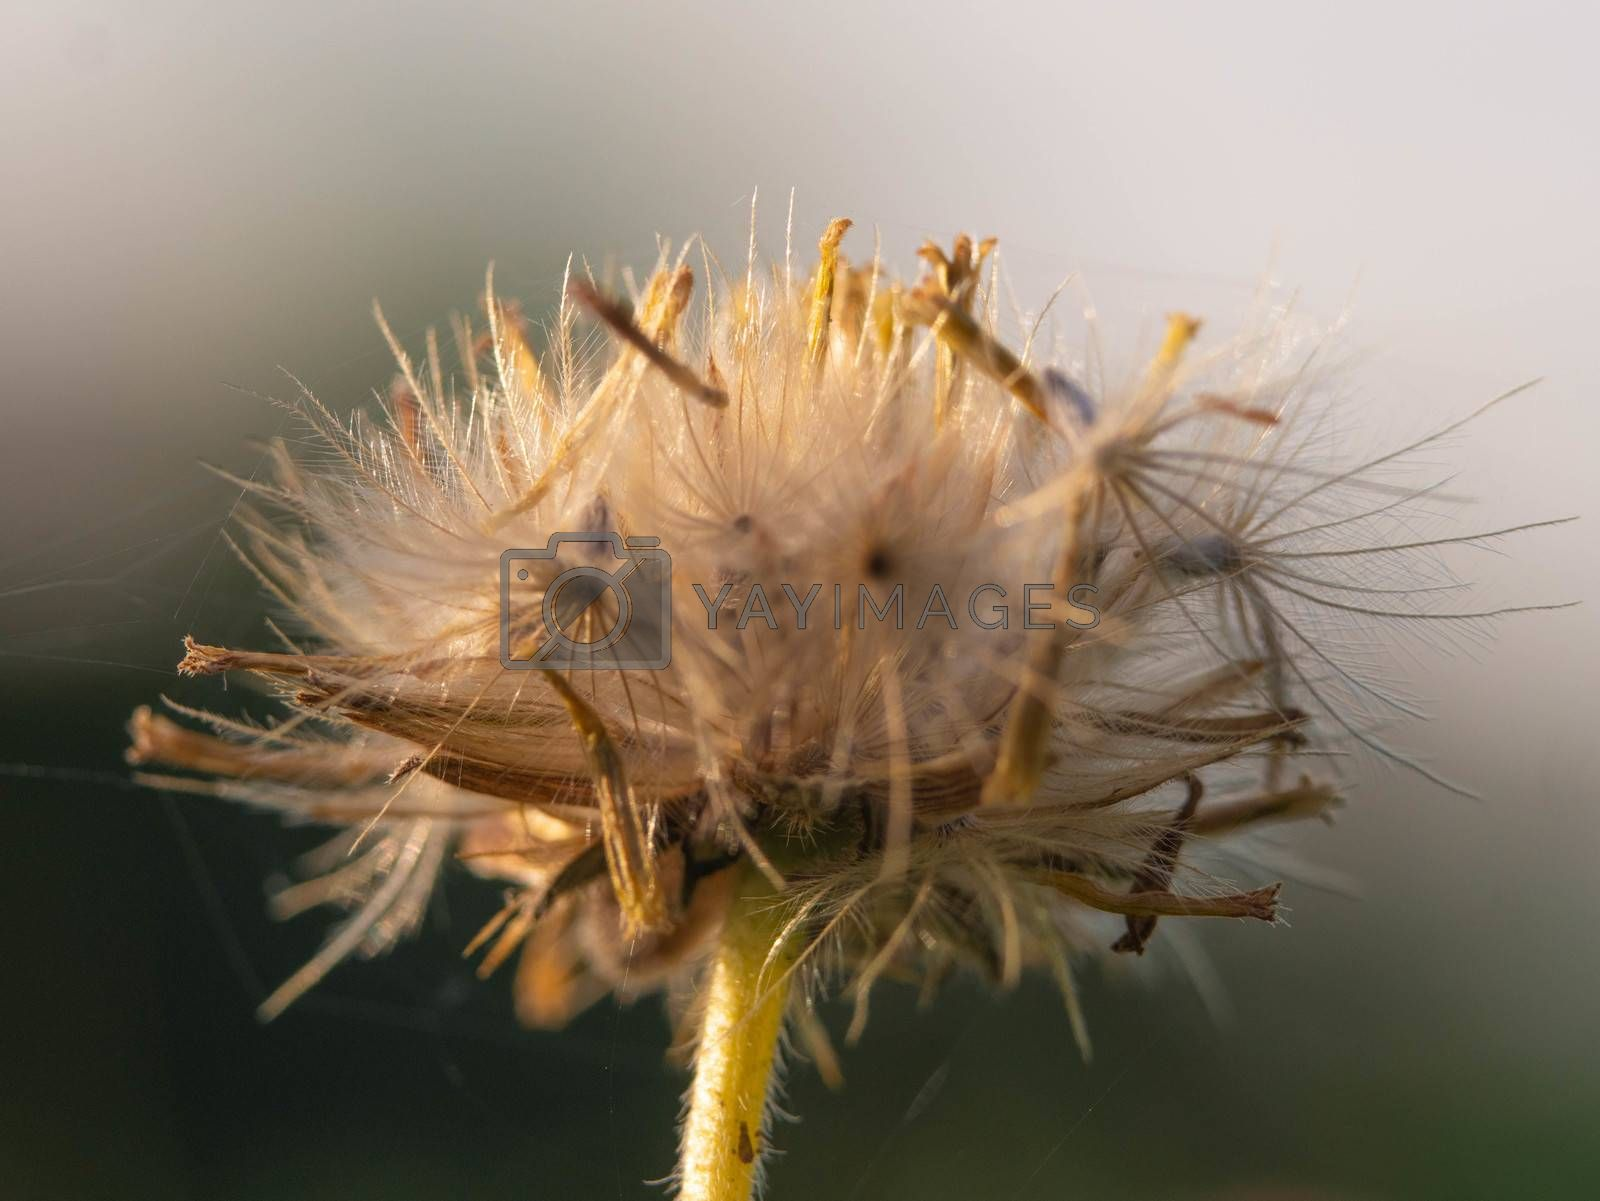 Close-up of dandelion blowing in the wind on nature background.